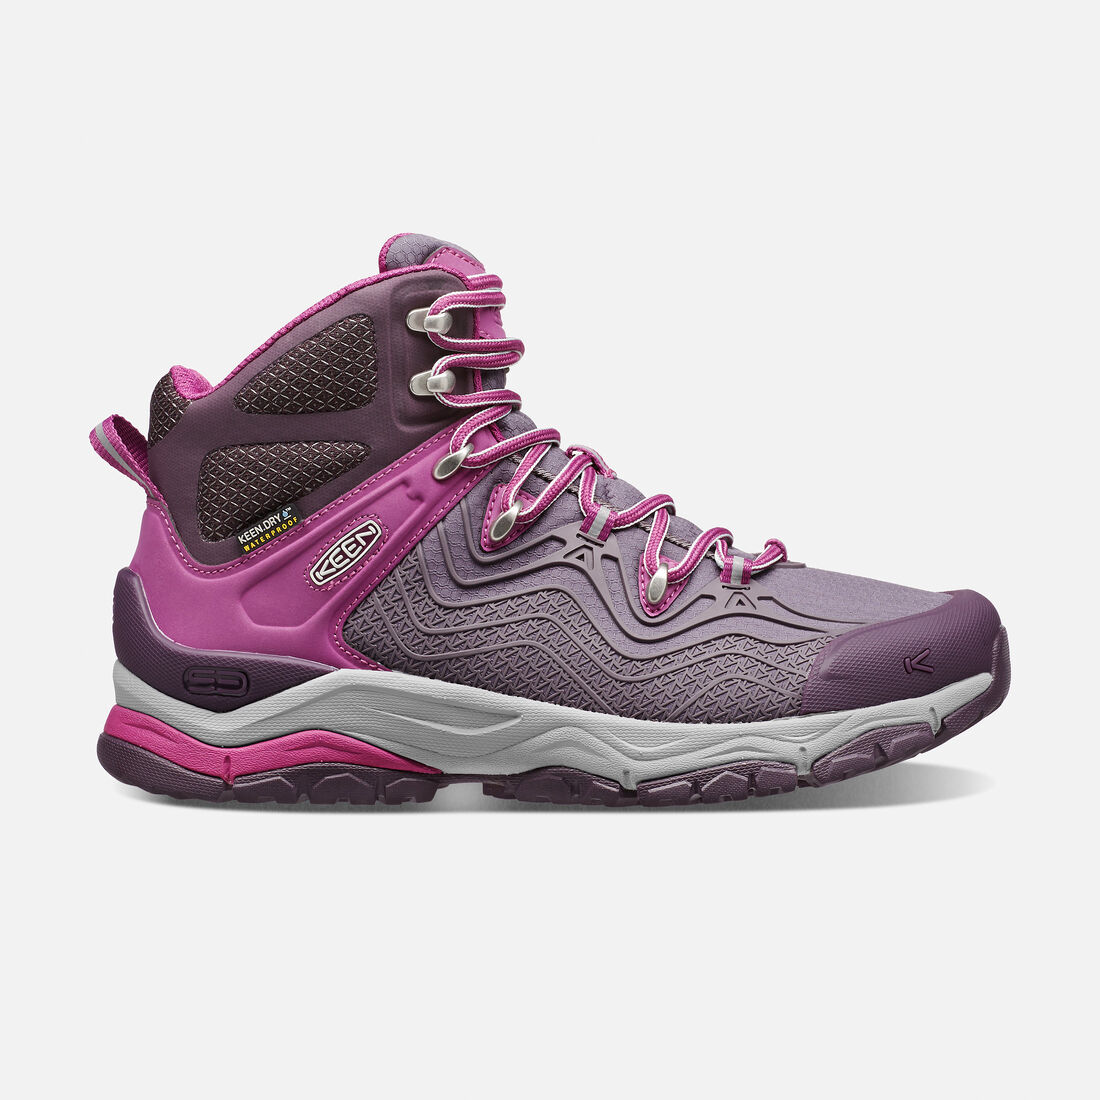 Women's APhlex Waterproof Boot in Plum/Shark - large view.